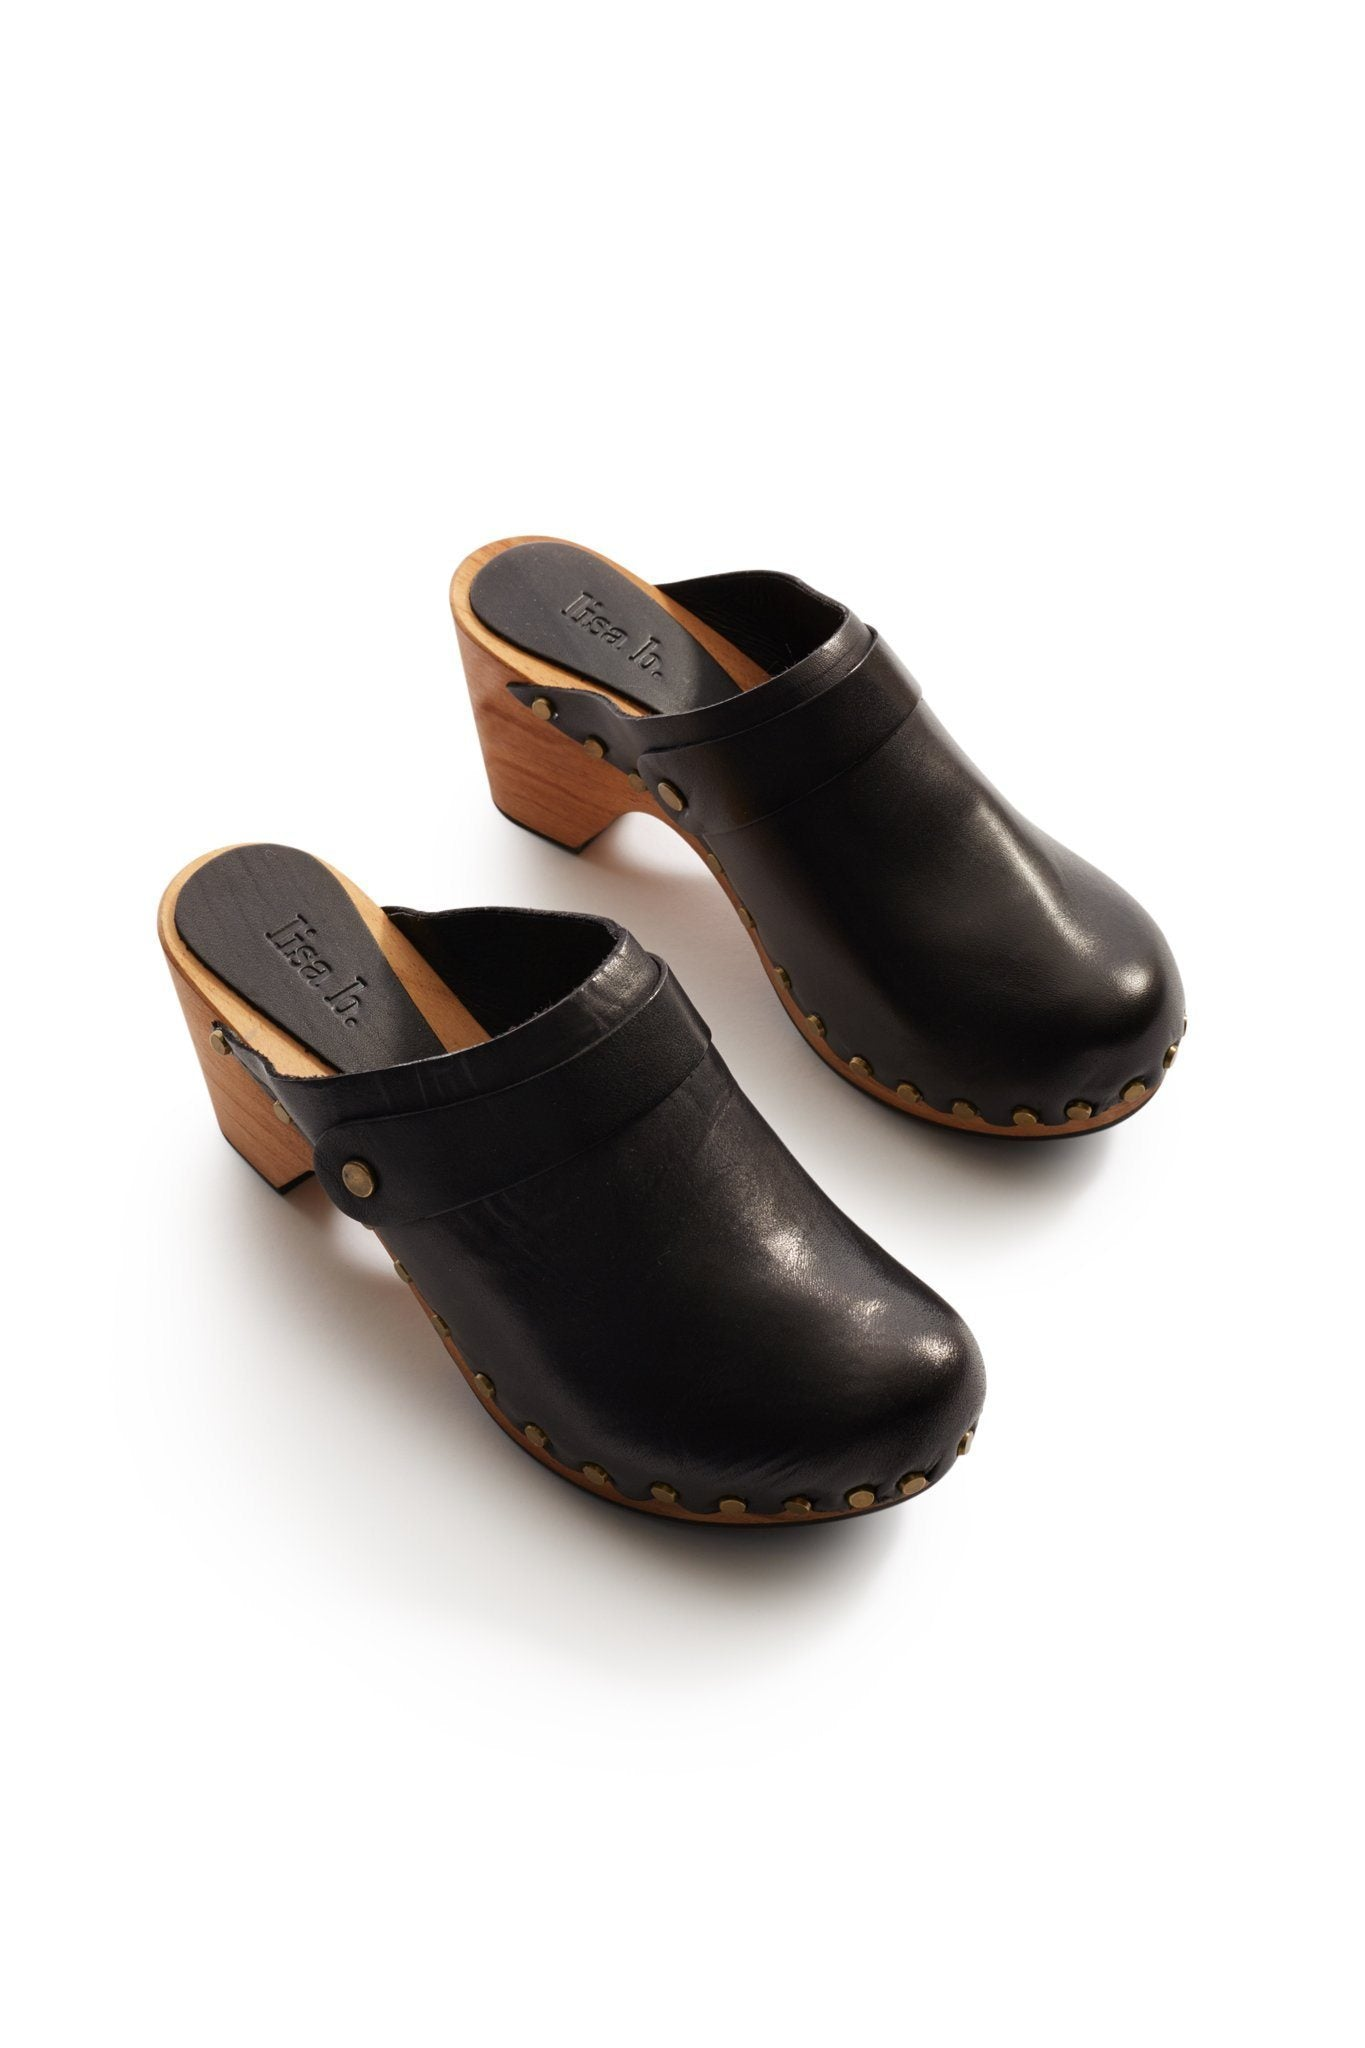 lisa b. High Heel Leather Clogs